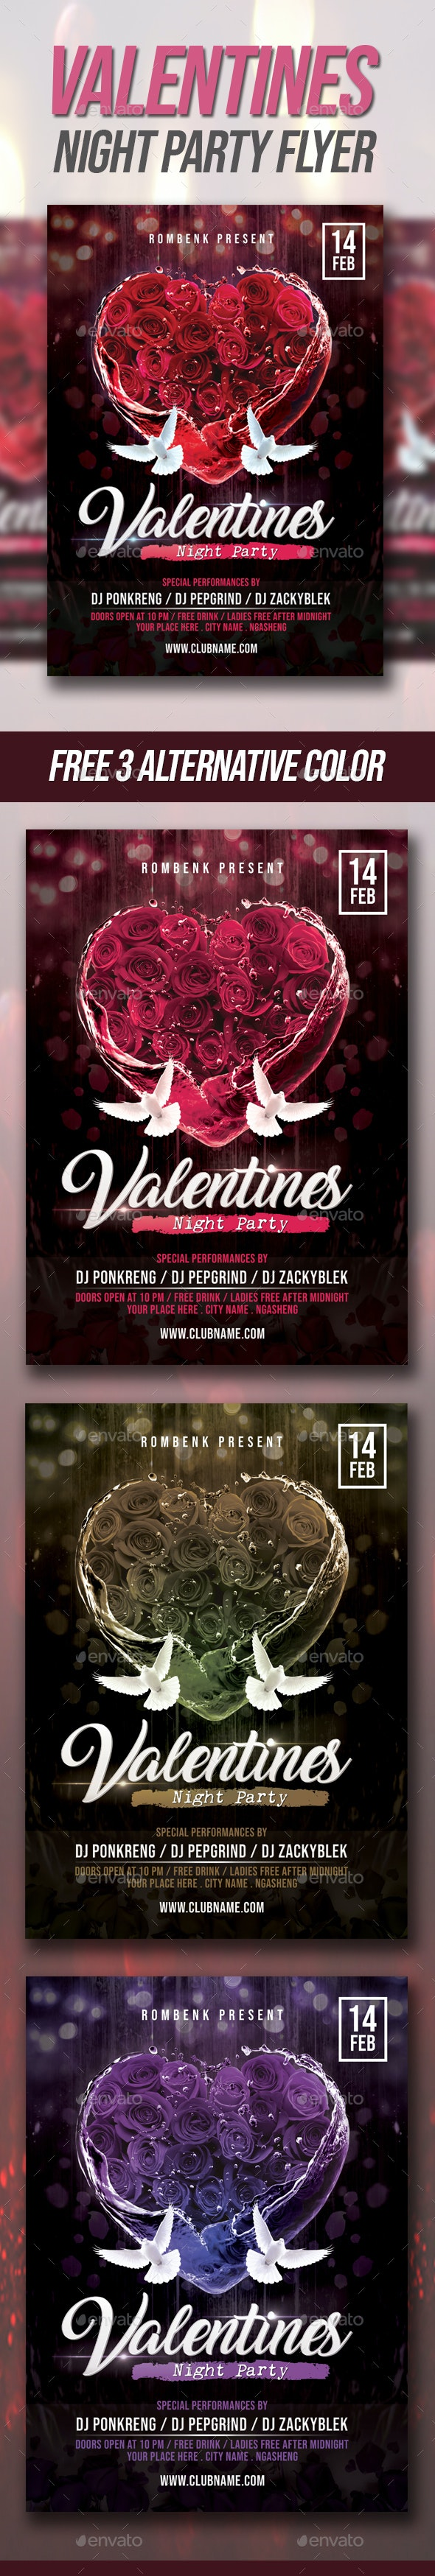 Valentines Party Flyer - Events Flyers